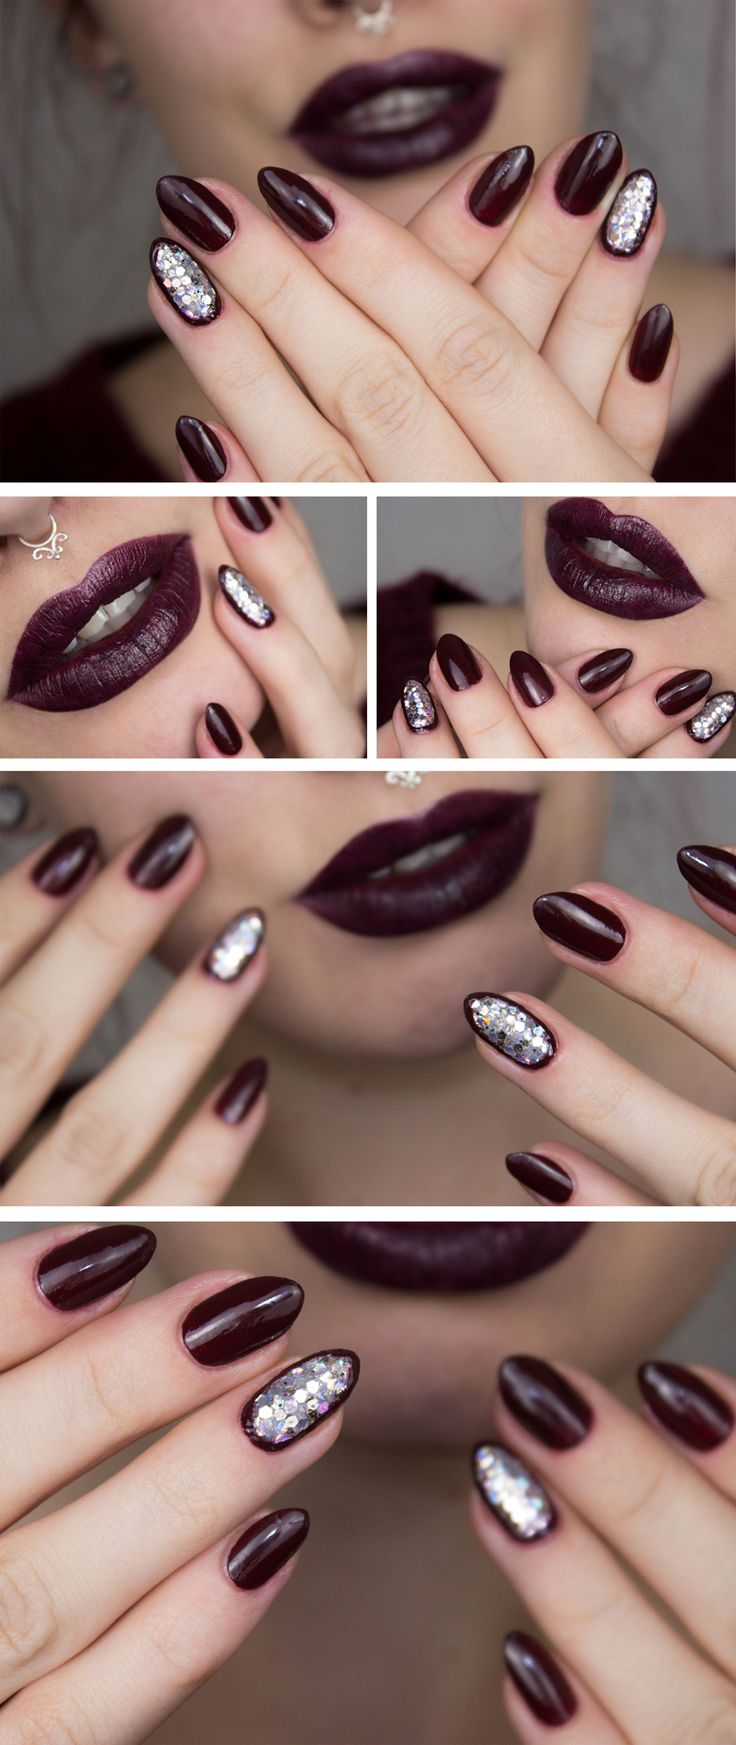 So stunning and perfect for fall. Nails and lips matchie-matchie.